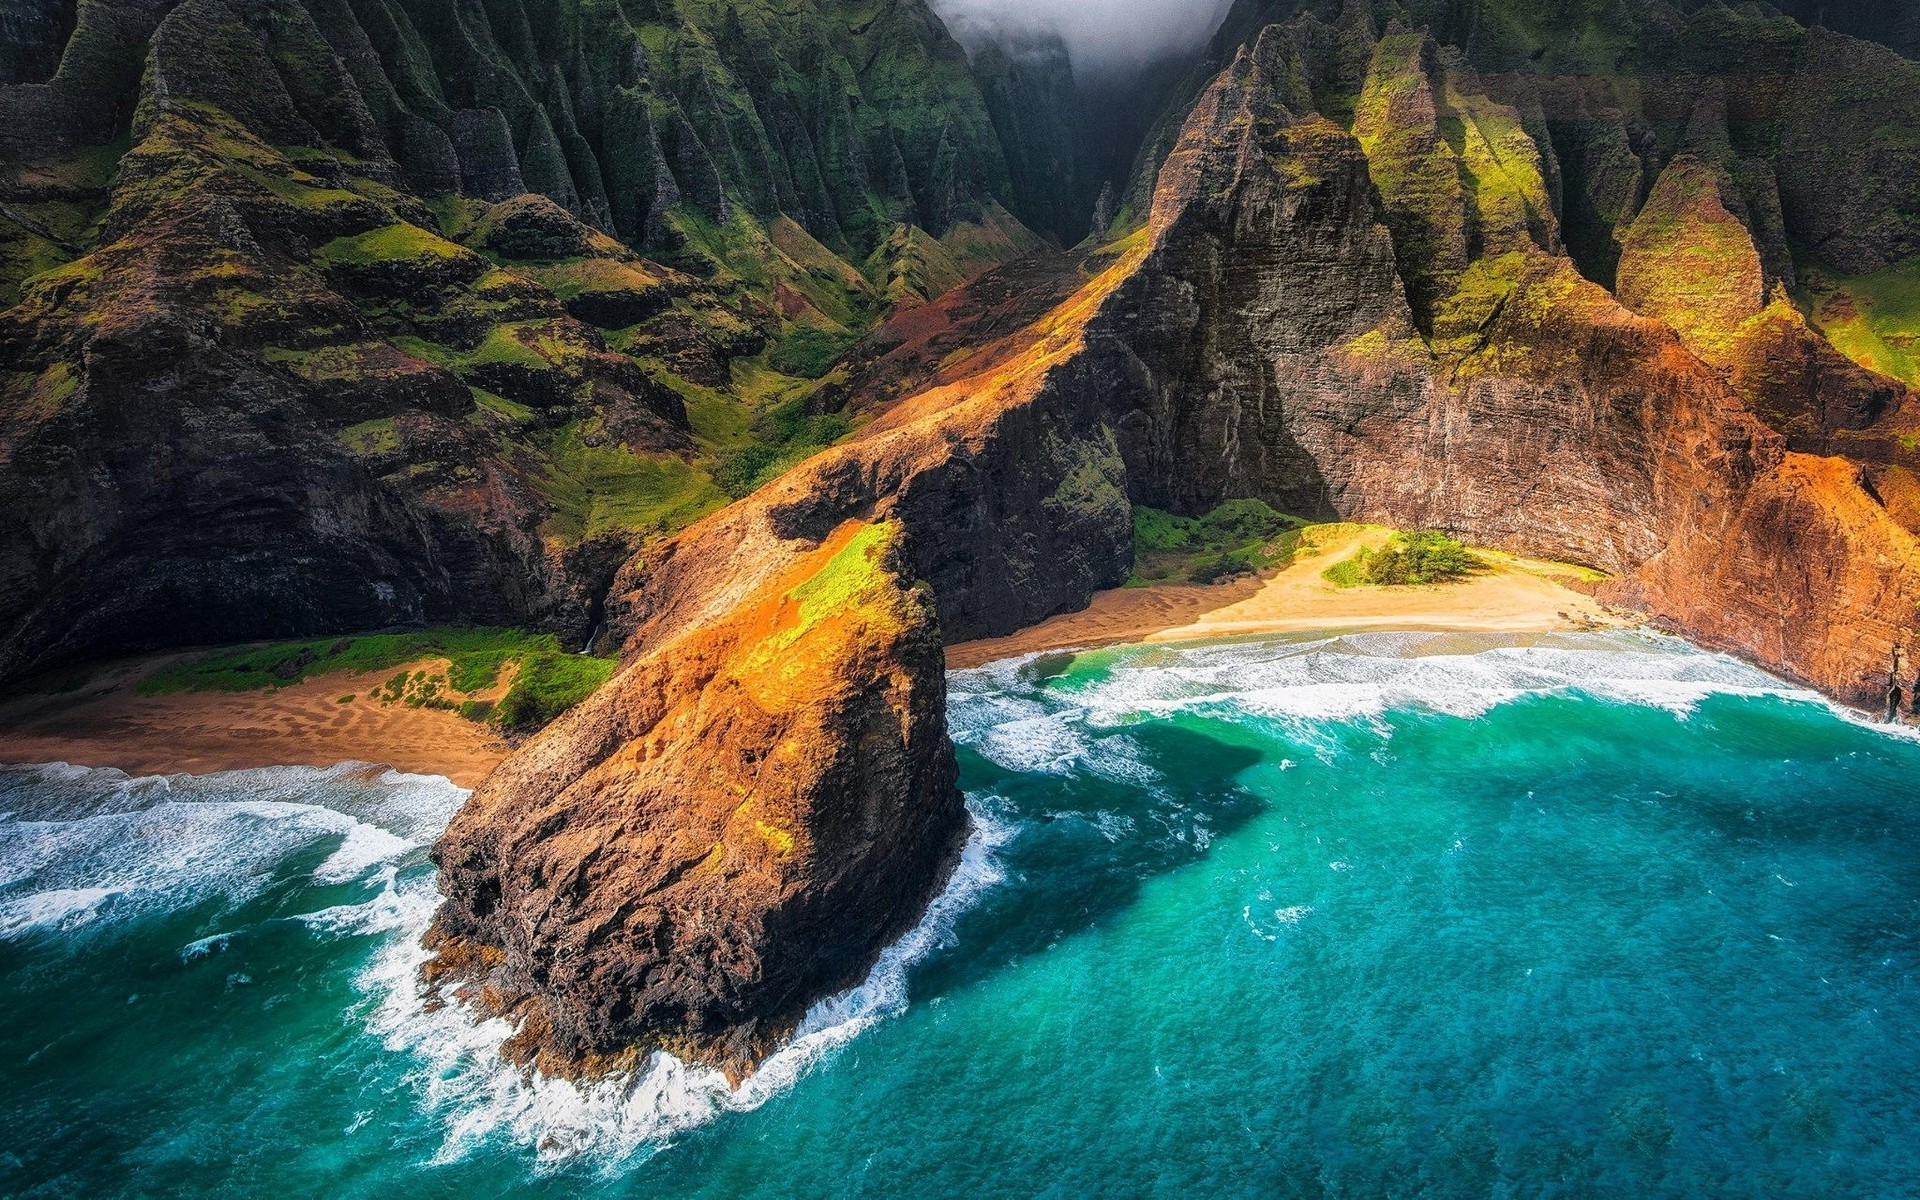 1920x1200 Landscape Nature Kauai Hawaii Beach Cliff Sea Mountain